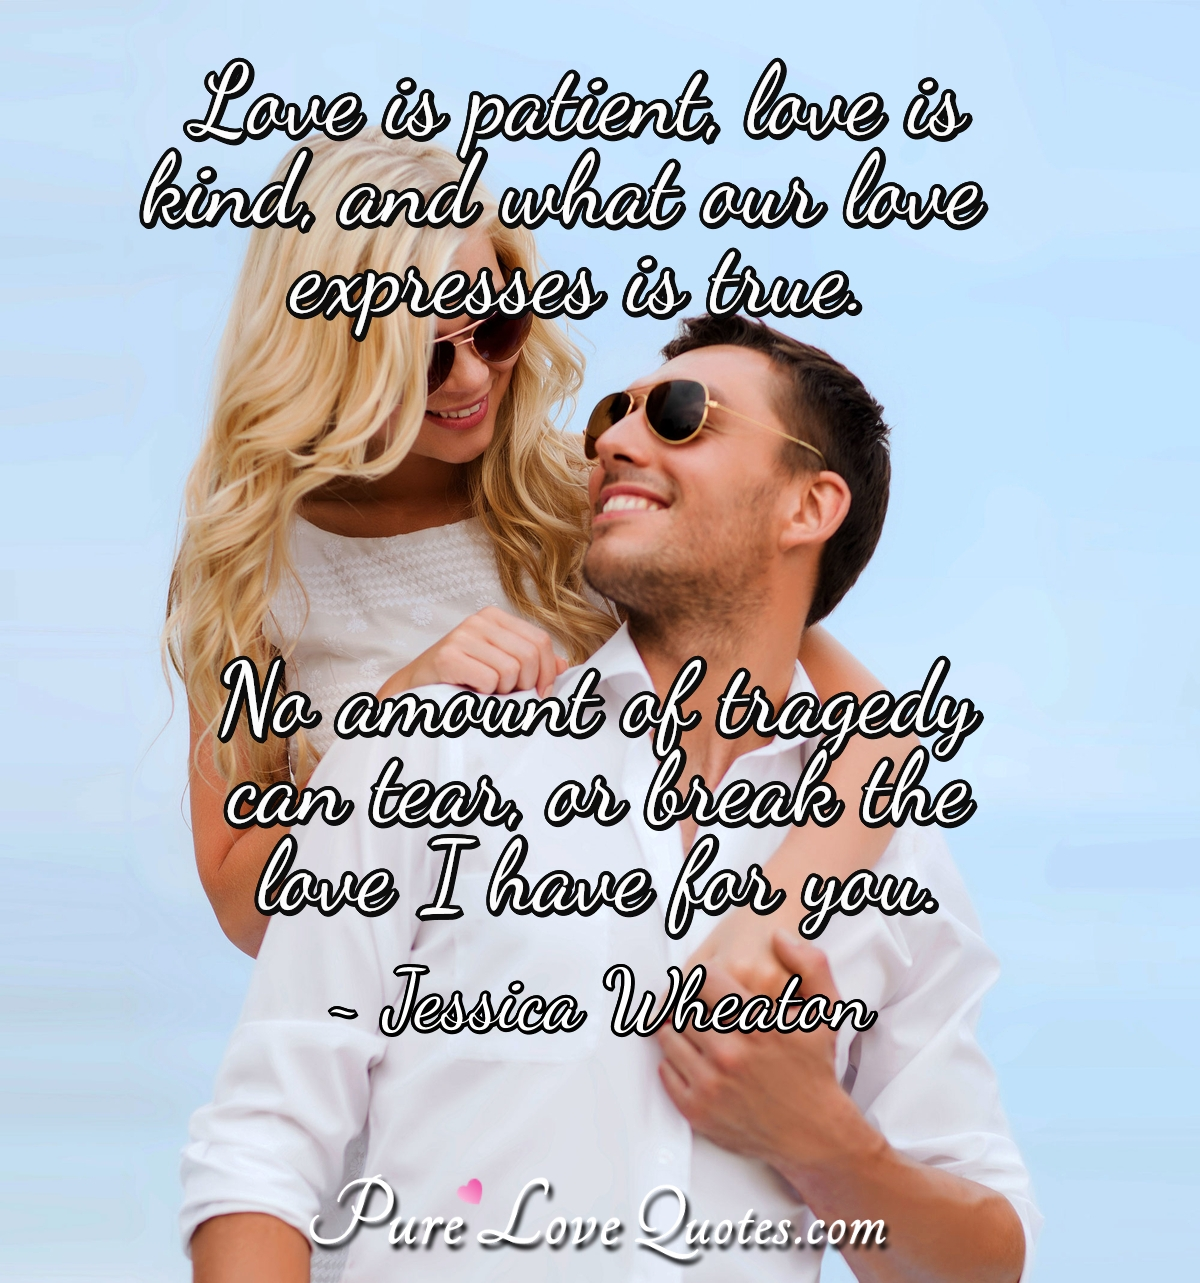 Love is patient, love is kind, and what our love express is true. No amount of tragedy can tear, or break the love I have for you. - Jessica Wheaton